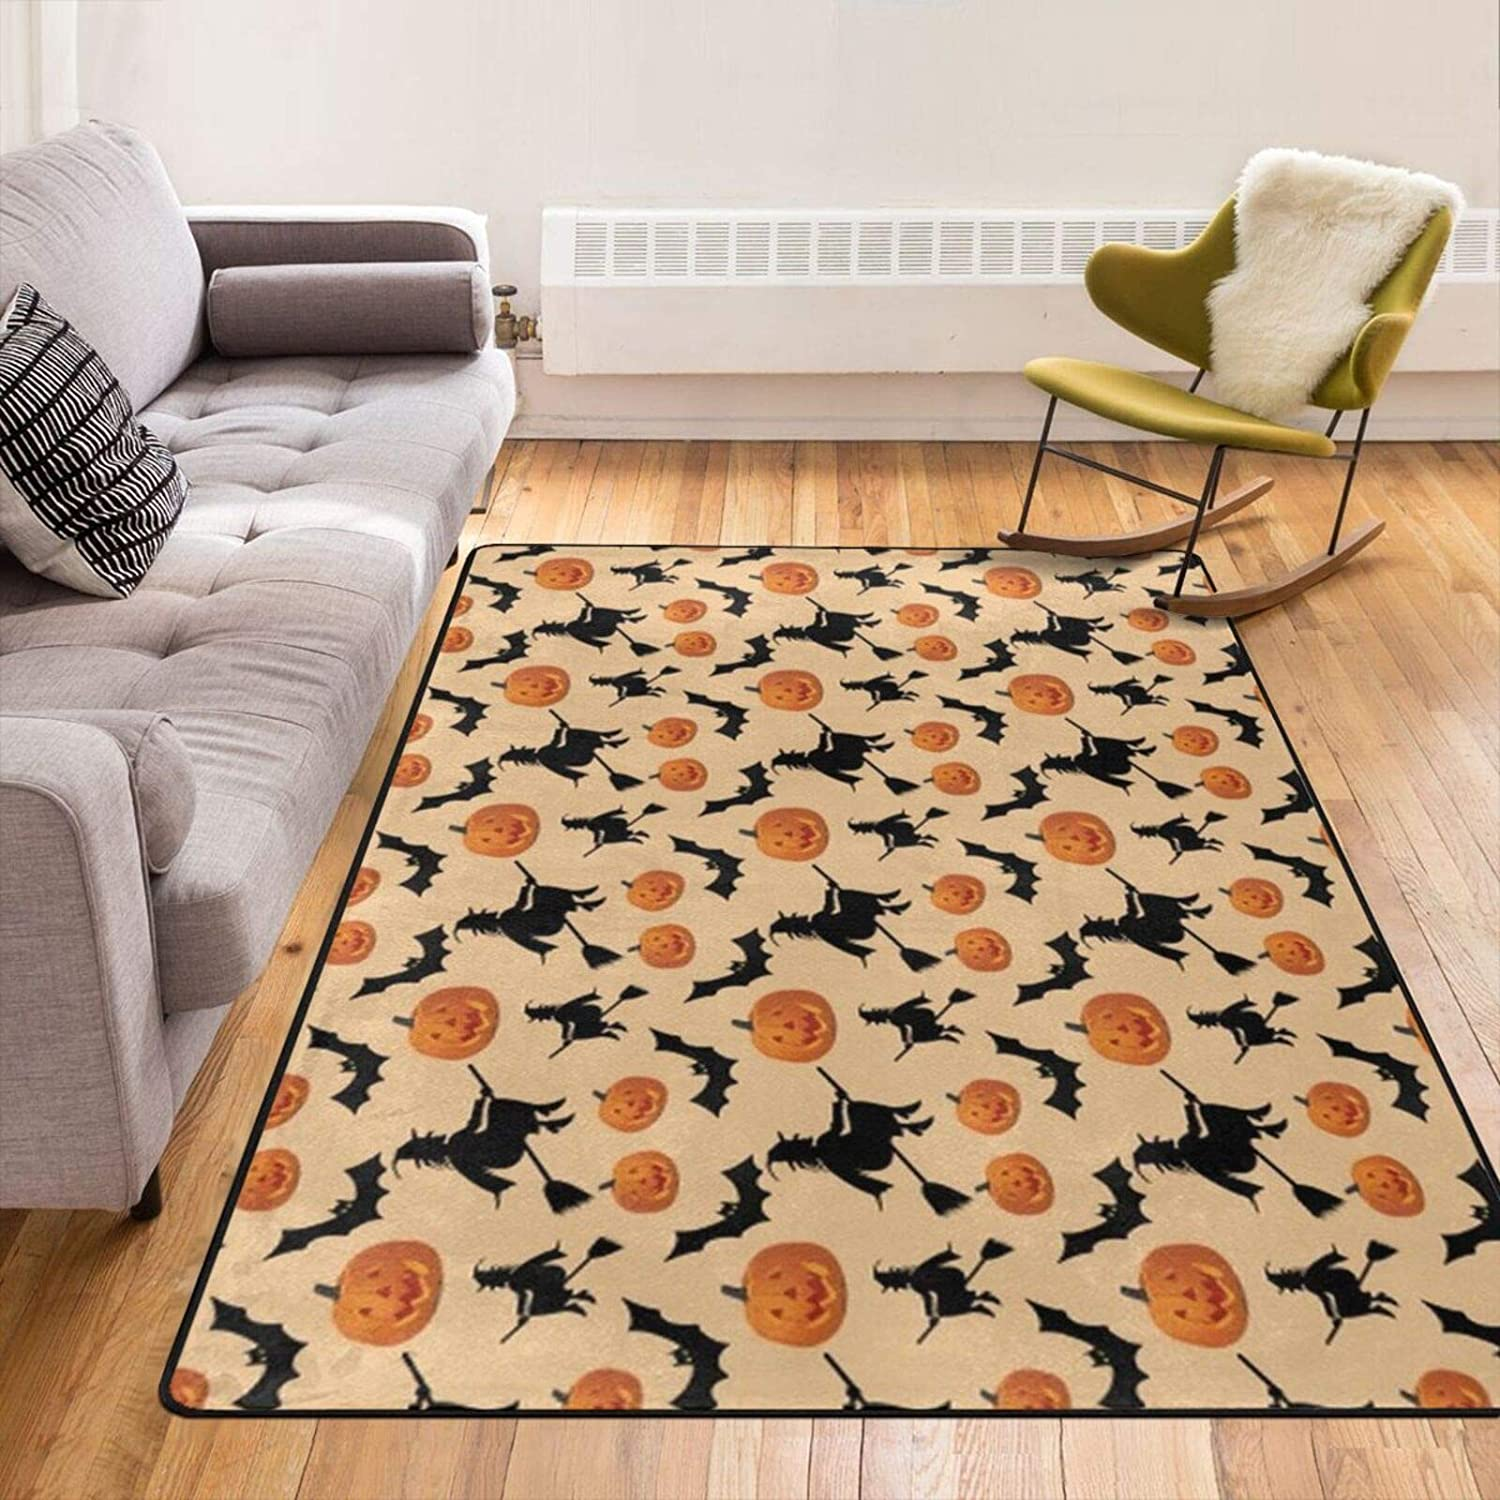 Contemporary Home Decor Non-Slip Halloween Witch Pumpkin Pattern Carpet Large Floor Mat for Living Room Bedroom Children Playroom Dormitory 60 X 39 Inch Area Rug